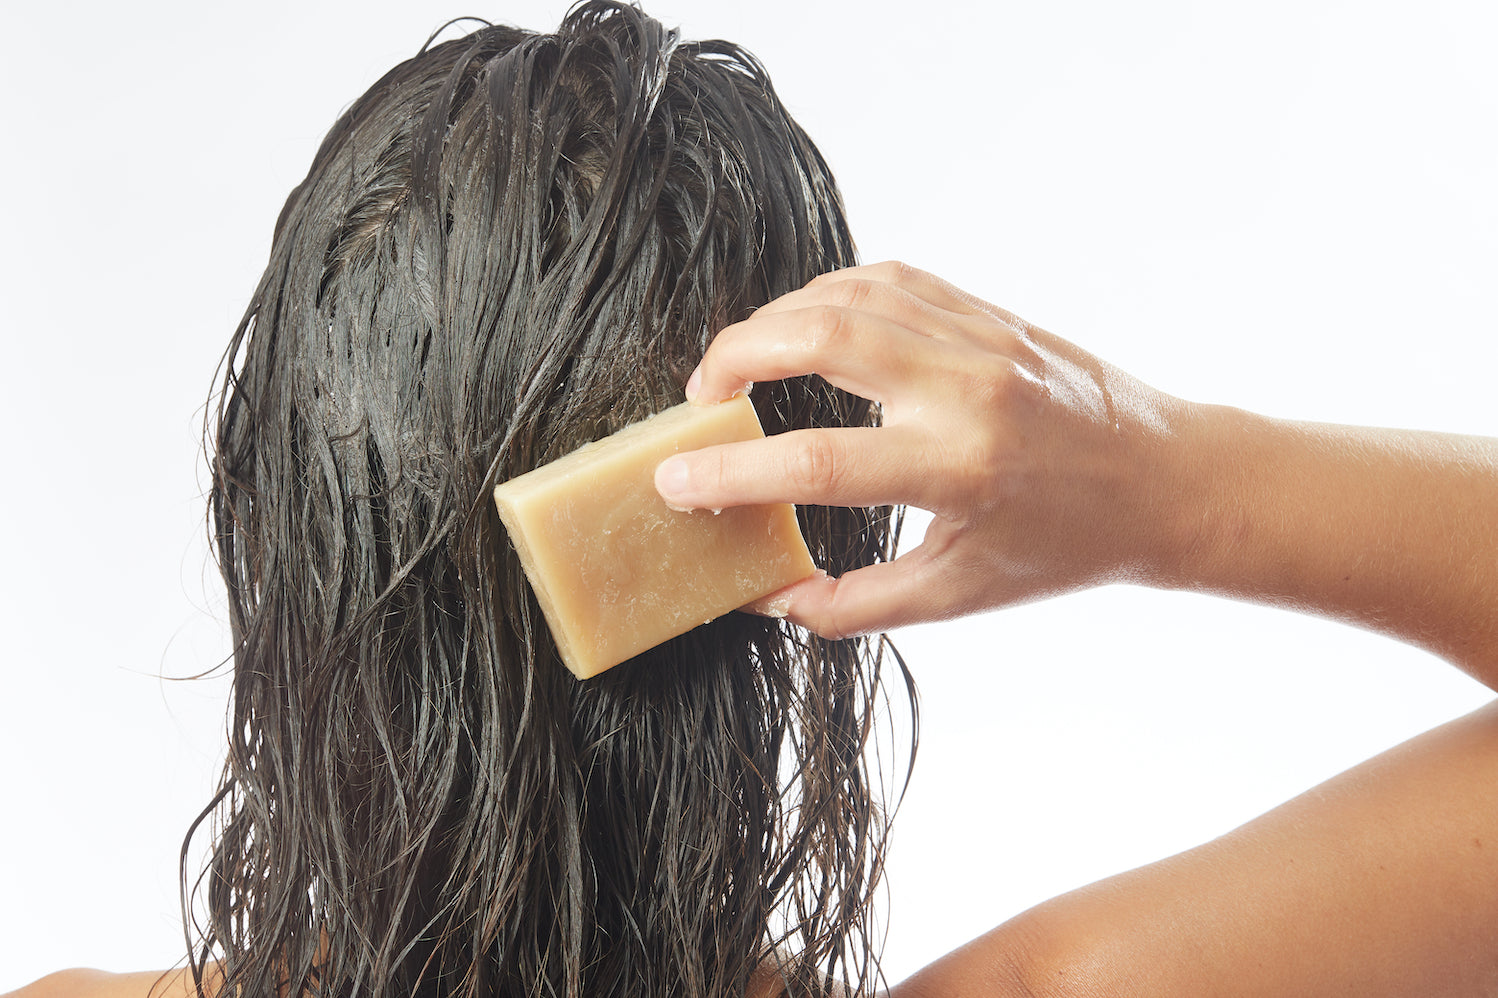 woman rubbing a bar of shampoo on her wet brown hair